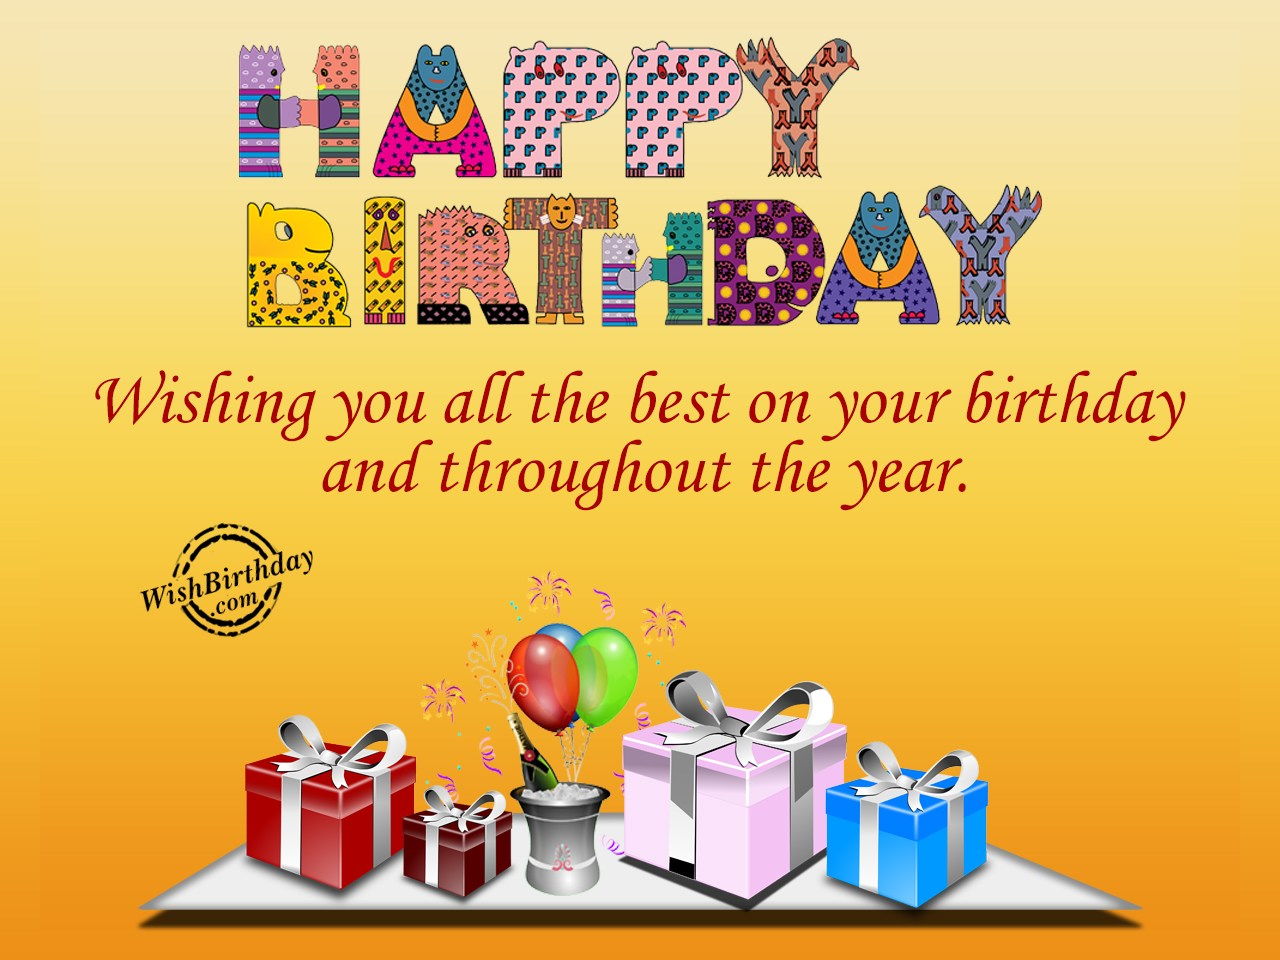 First Wishing You All On Your Birthday Wishing You All On Your Birthday Wish You Poem Wish You Work inspiration Wish You The Best